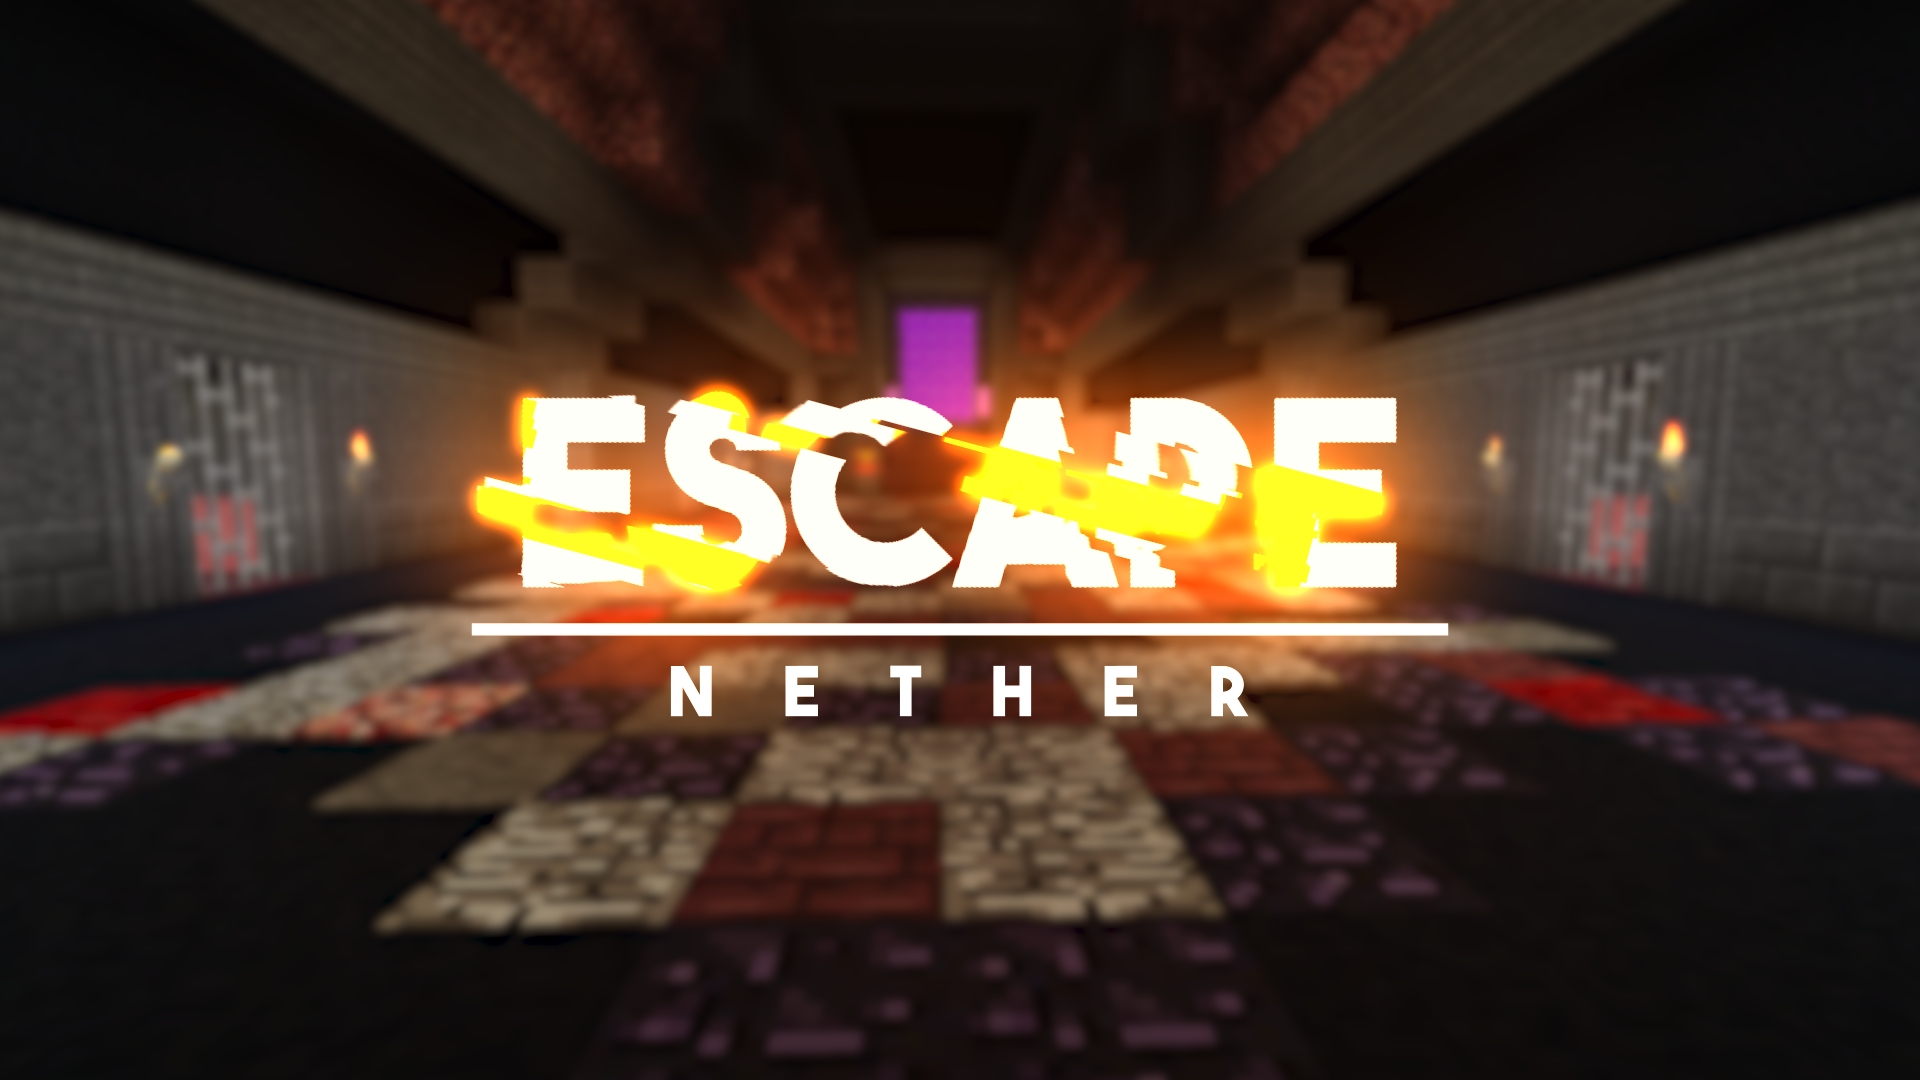 Escape: Nether